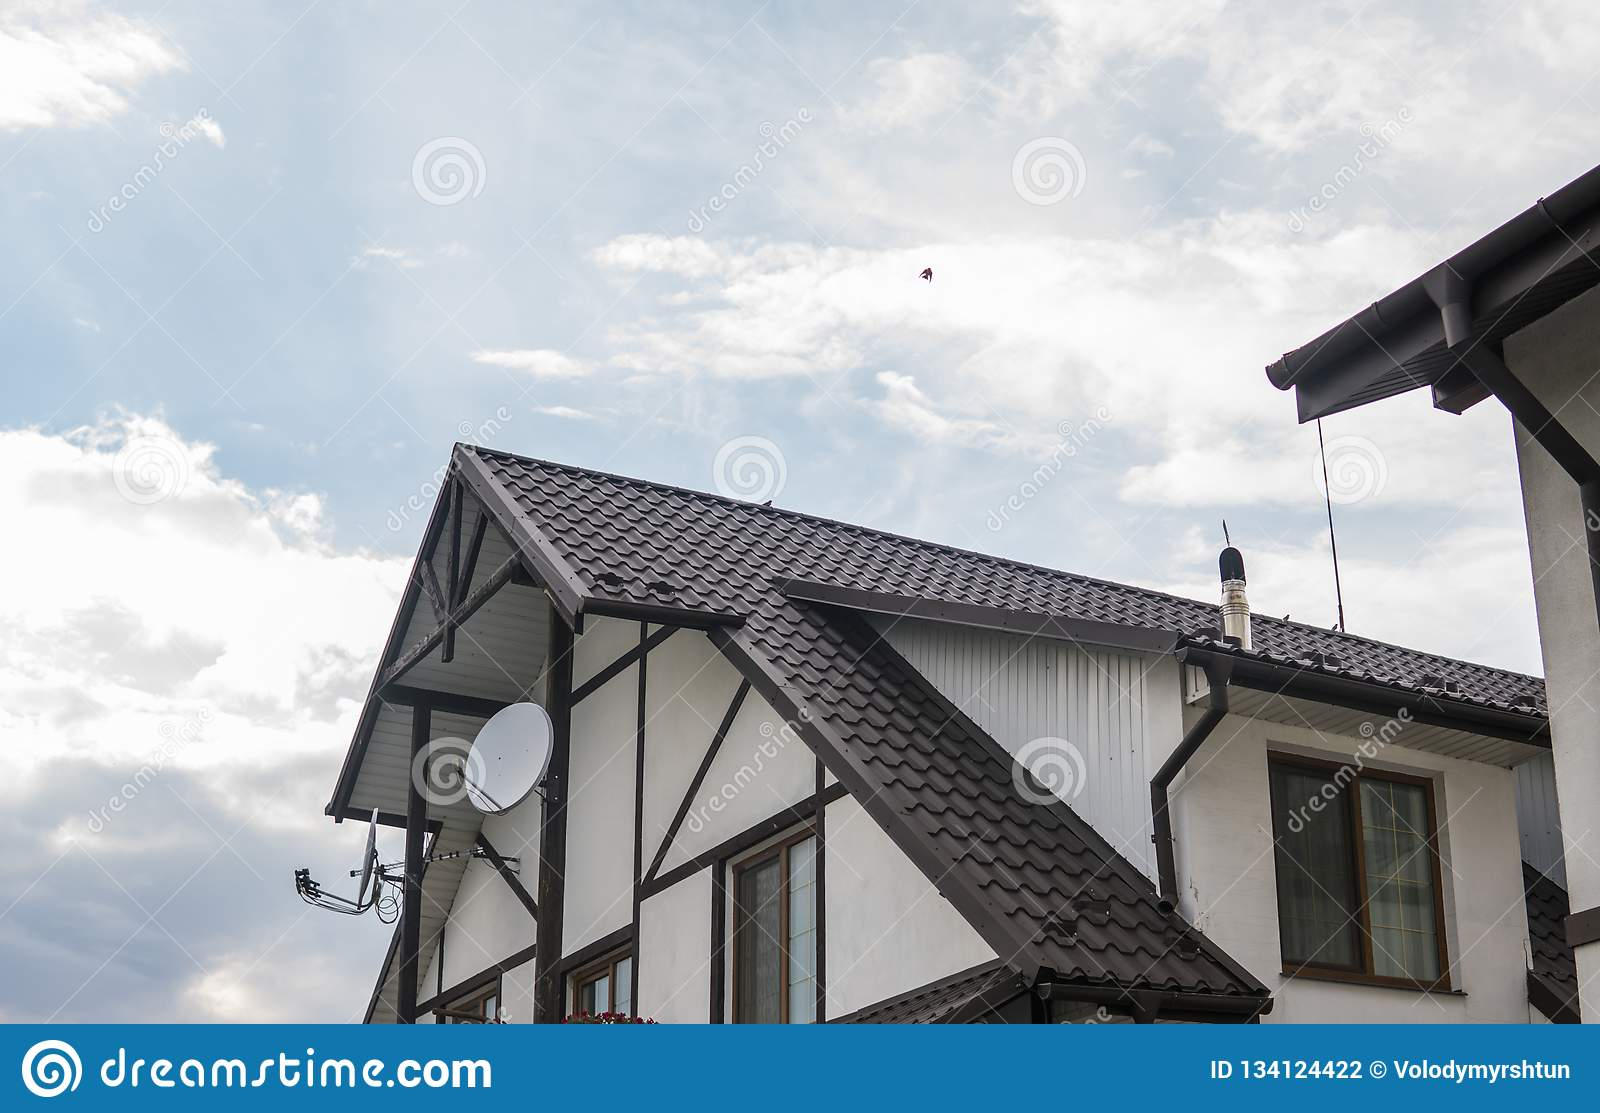 Modern Roof Covered With Tile Effect Pvc Coated Brown Metal Roof Sheets Against Cloudy Sky Stock Photo Image Of Exterior Design 134124422